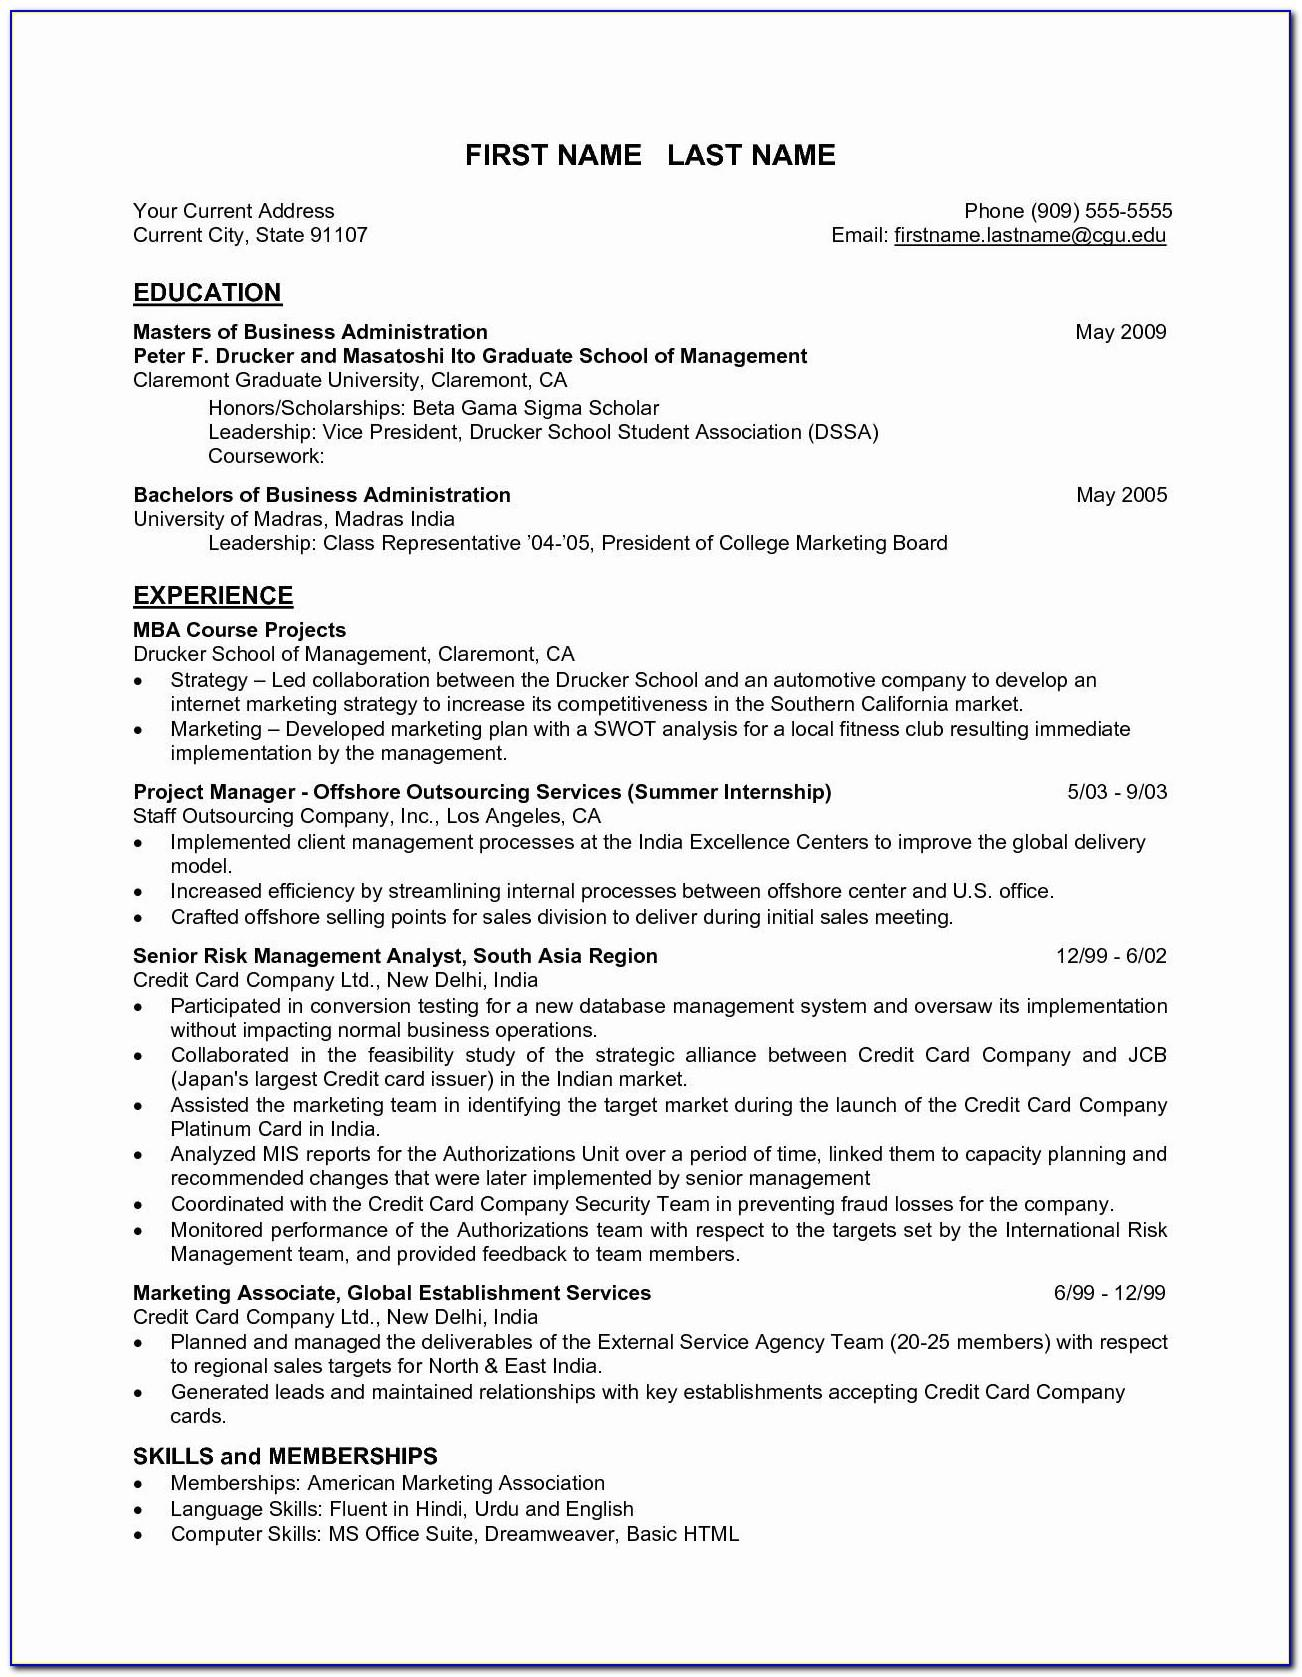 Resume Template For Freshers Engineering